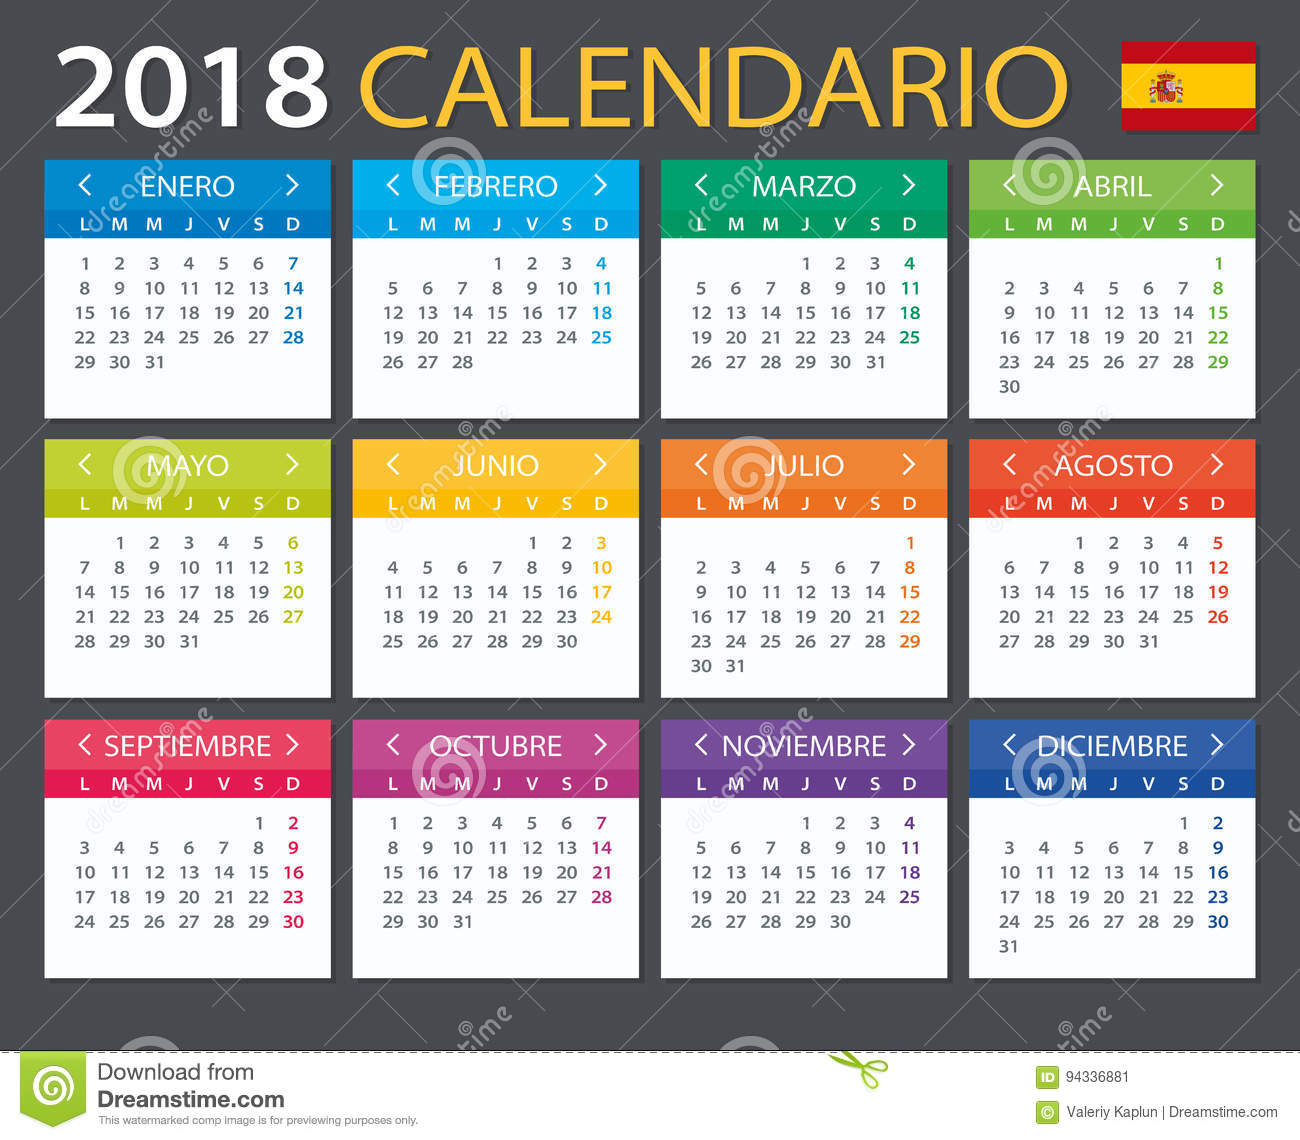 calendar 2018 spanish version